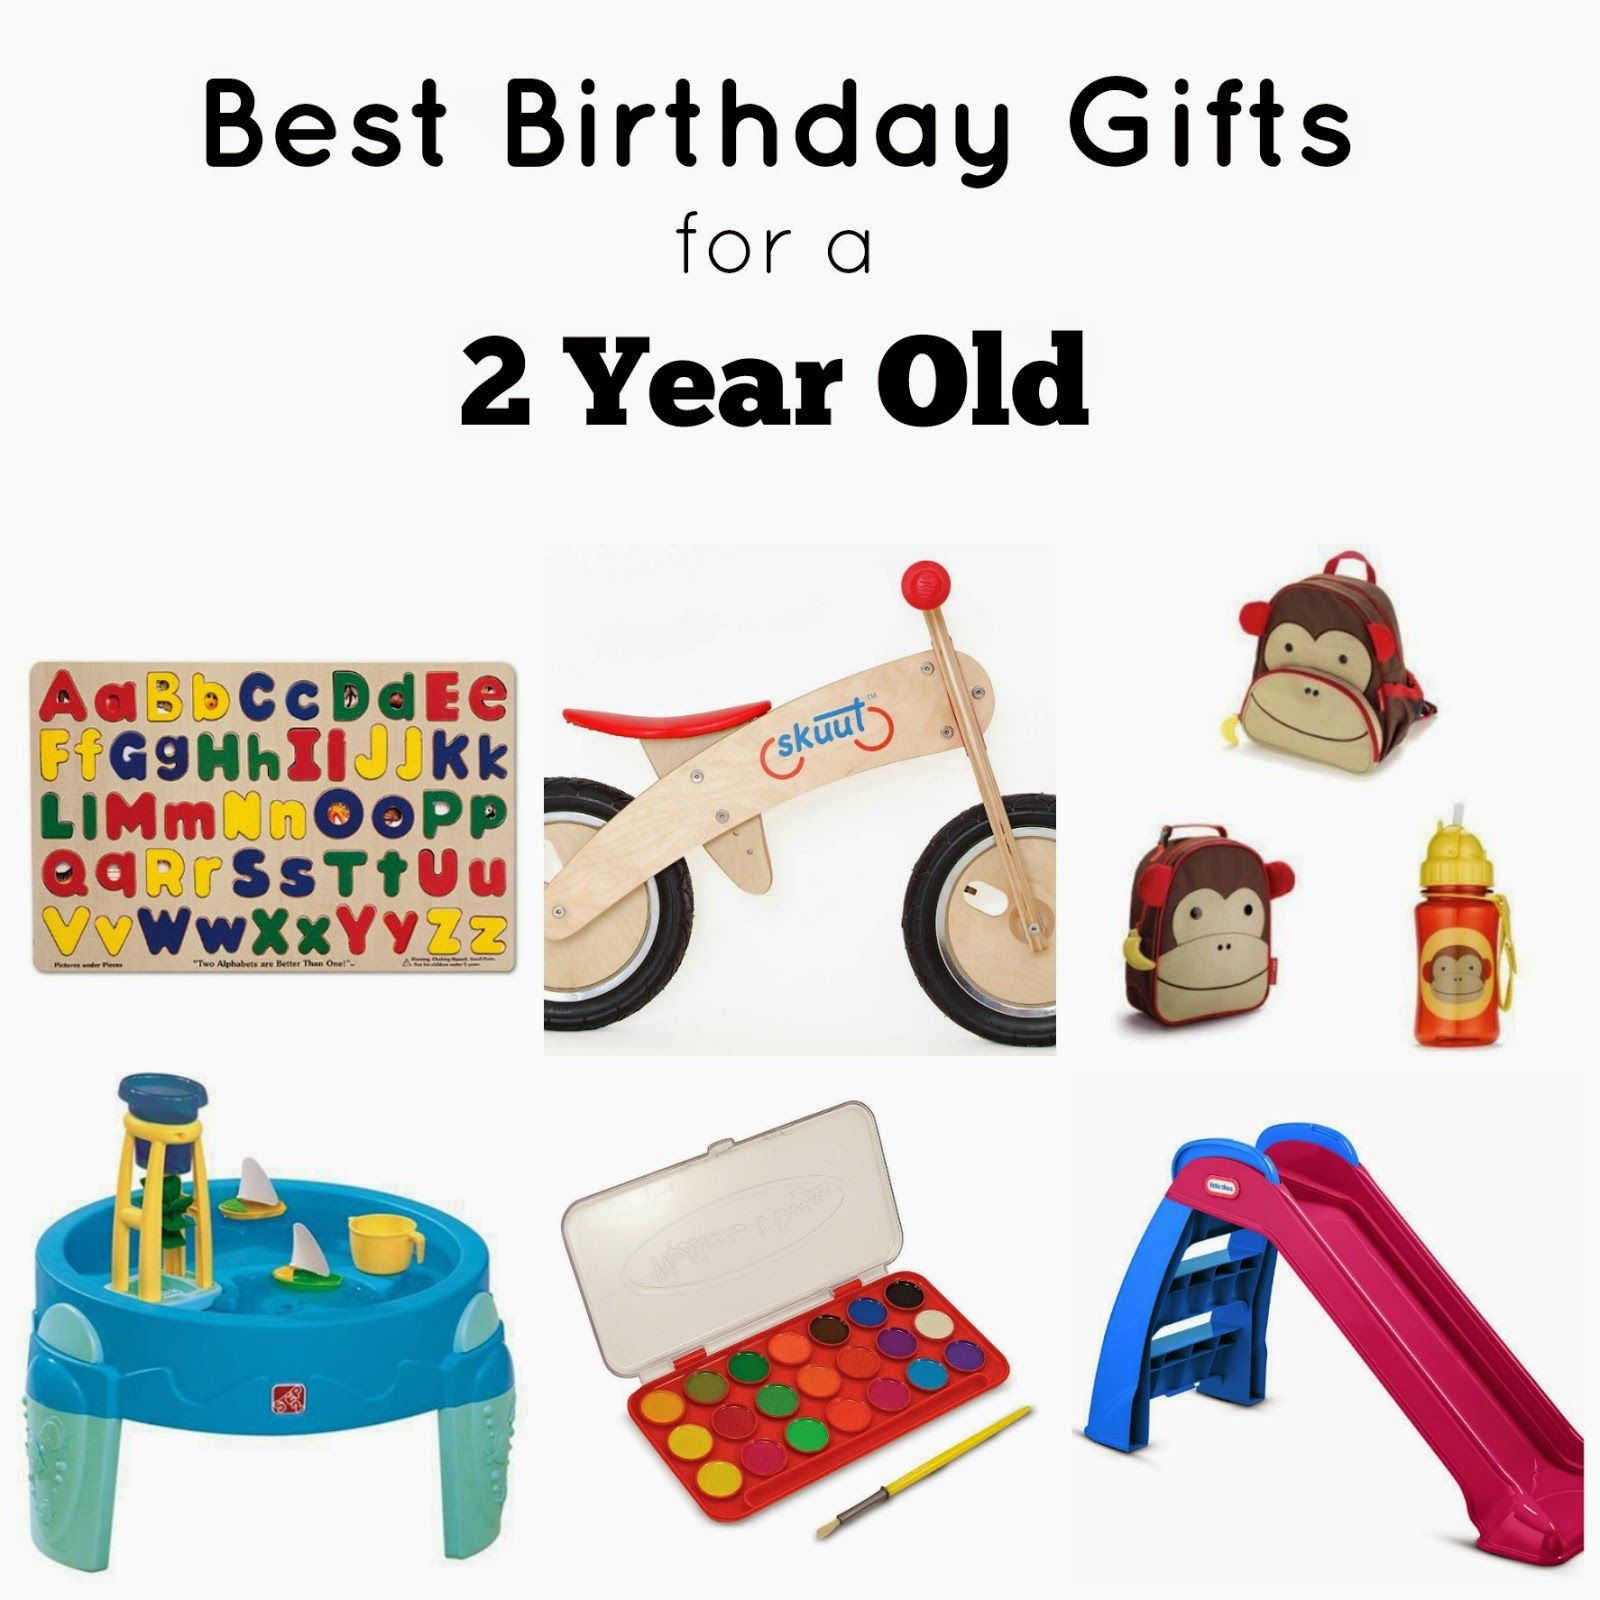 Our Life On A Budget...: Best Birthday Gifts For A 2 Year